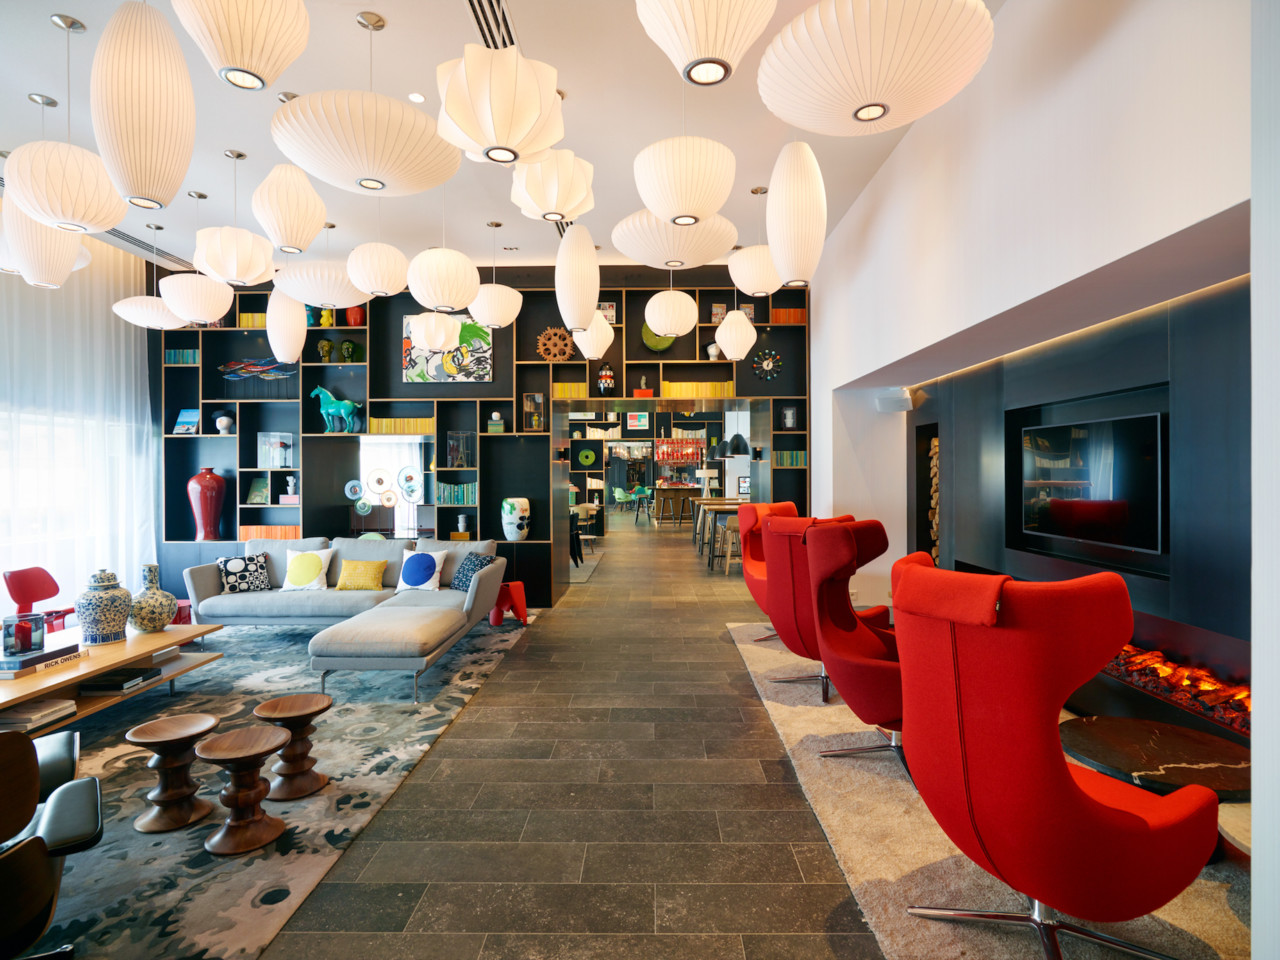 Citizenm s gare de lyon hotel is a hub for travel art and for Top design hotels in paris